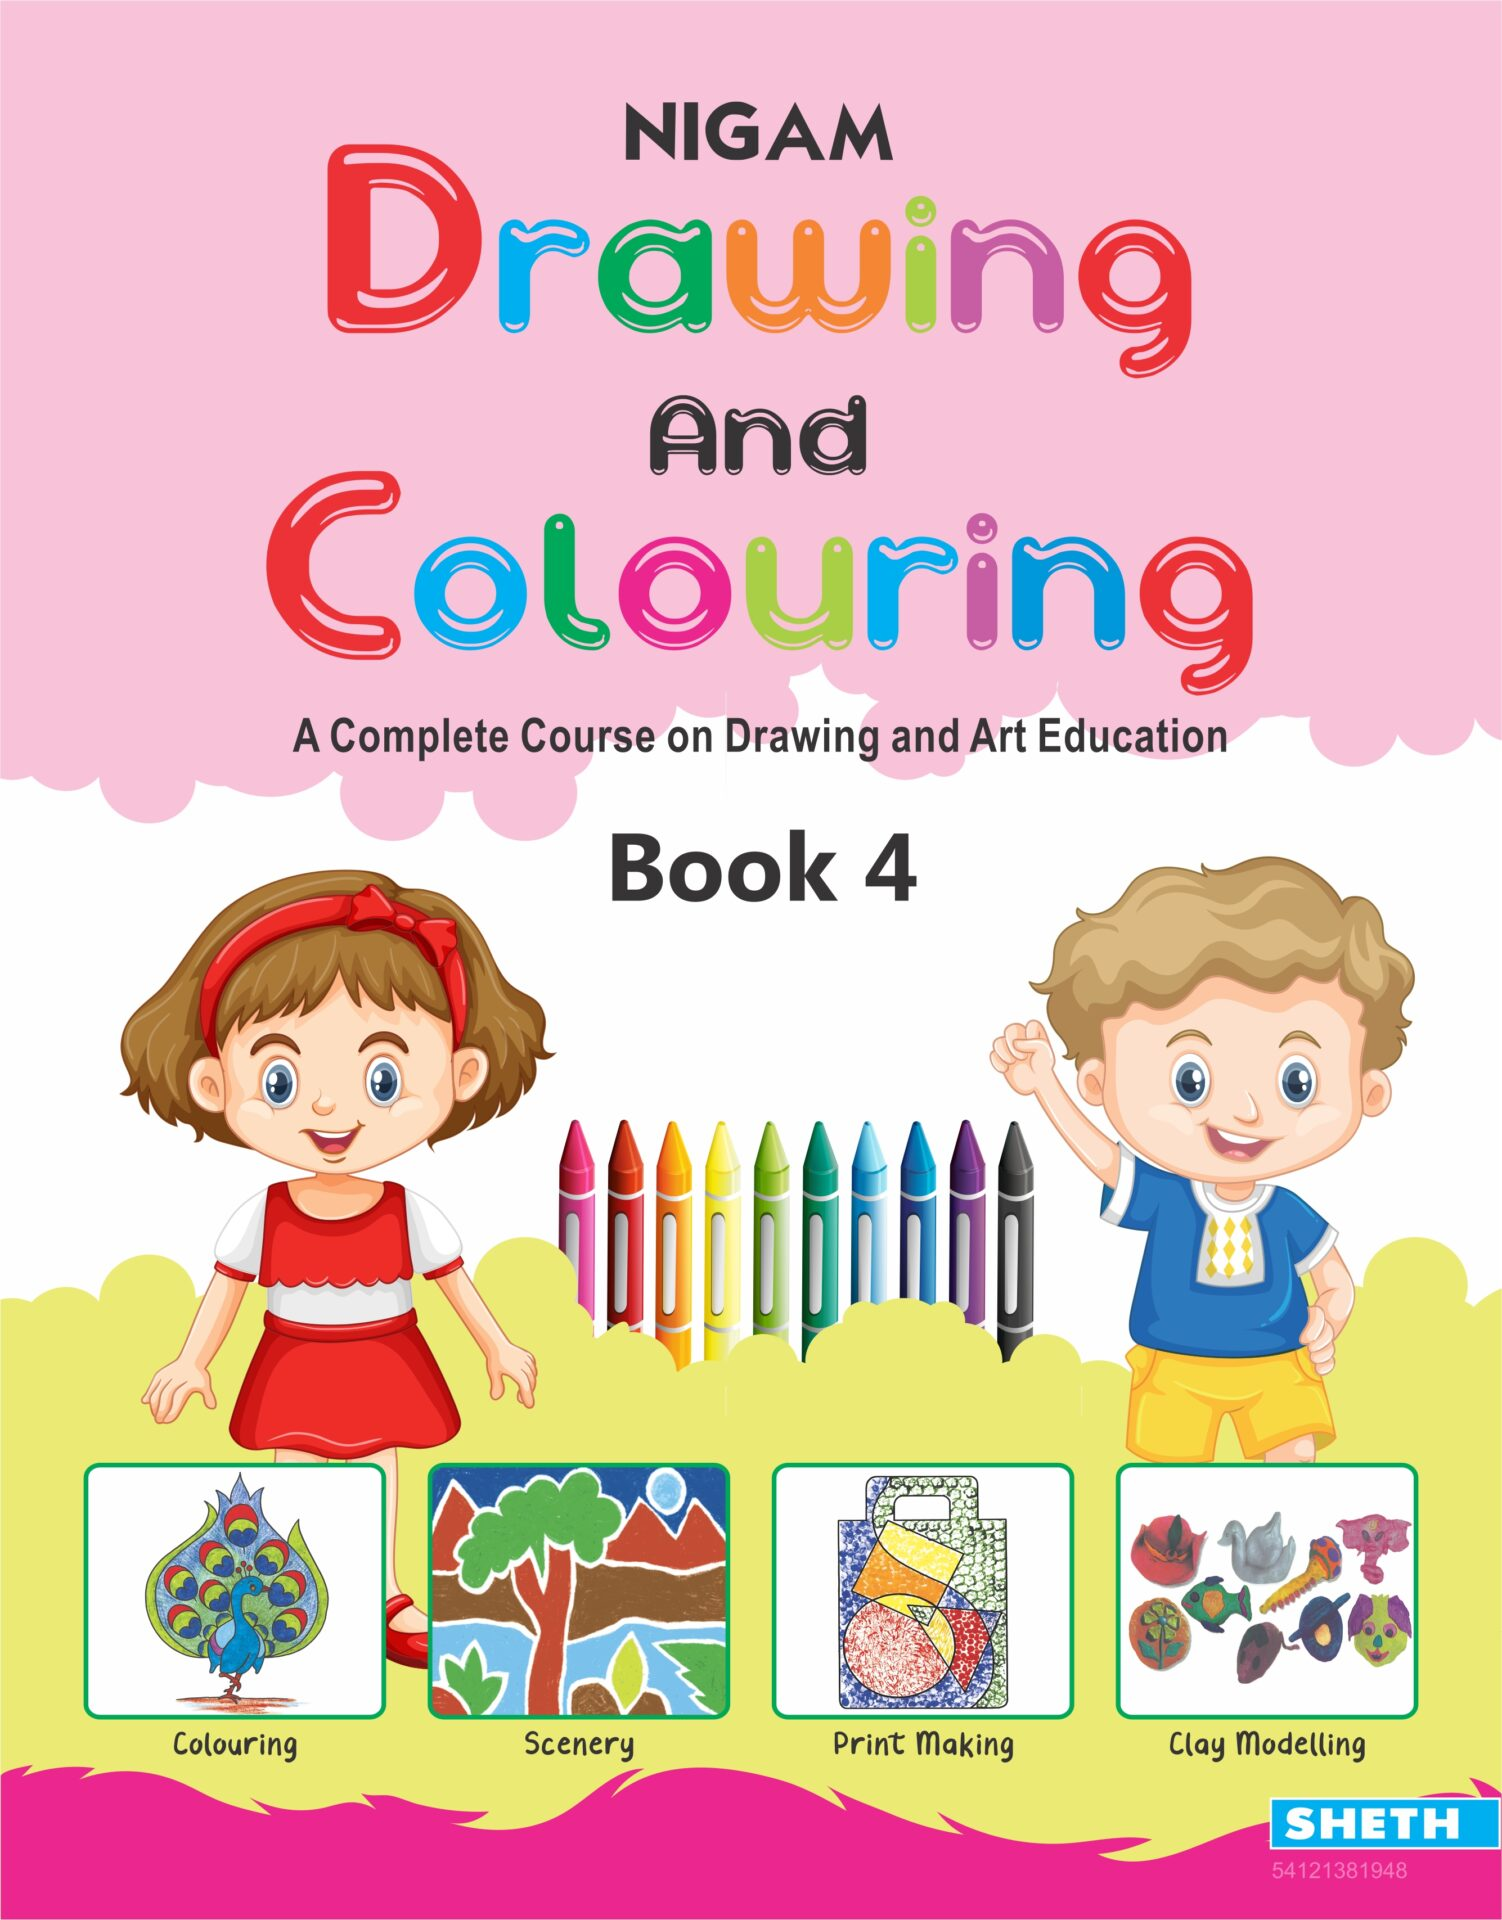 Nigam Drawing and Colouring Book 4 1